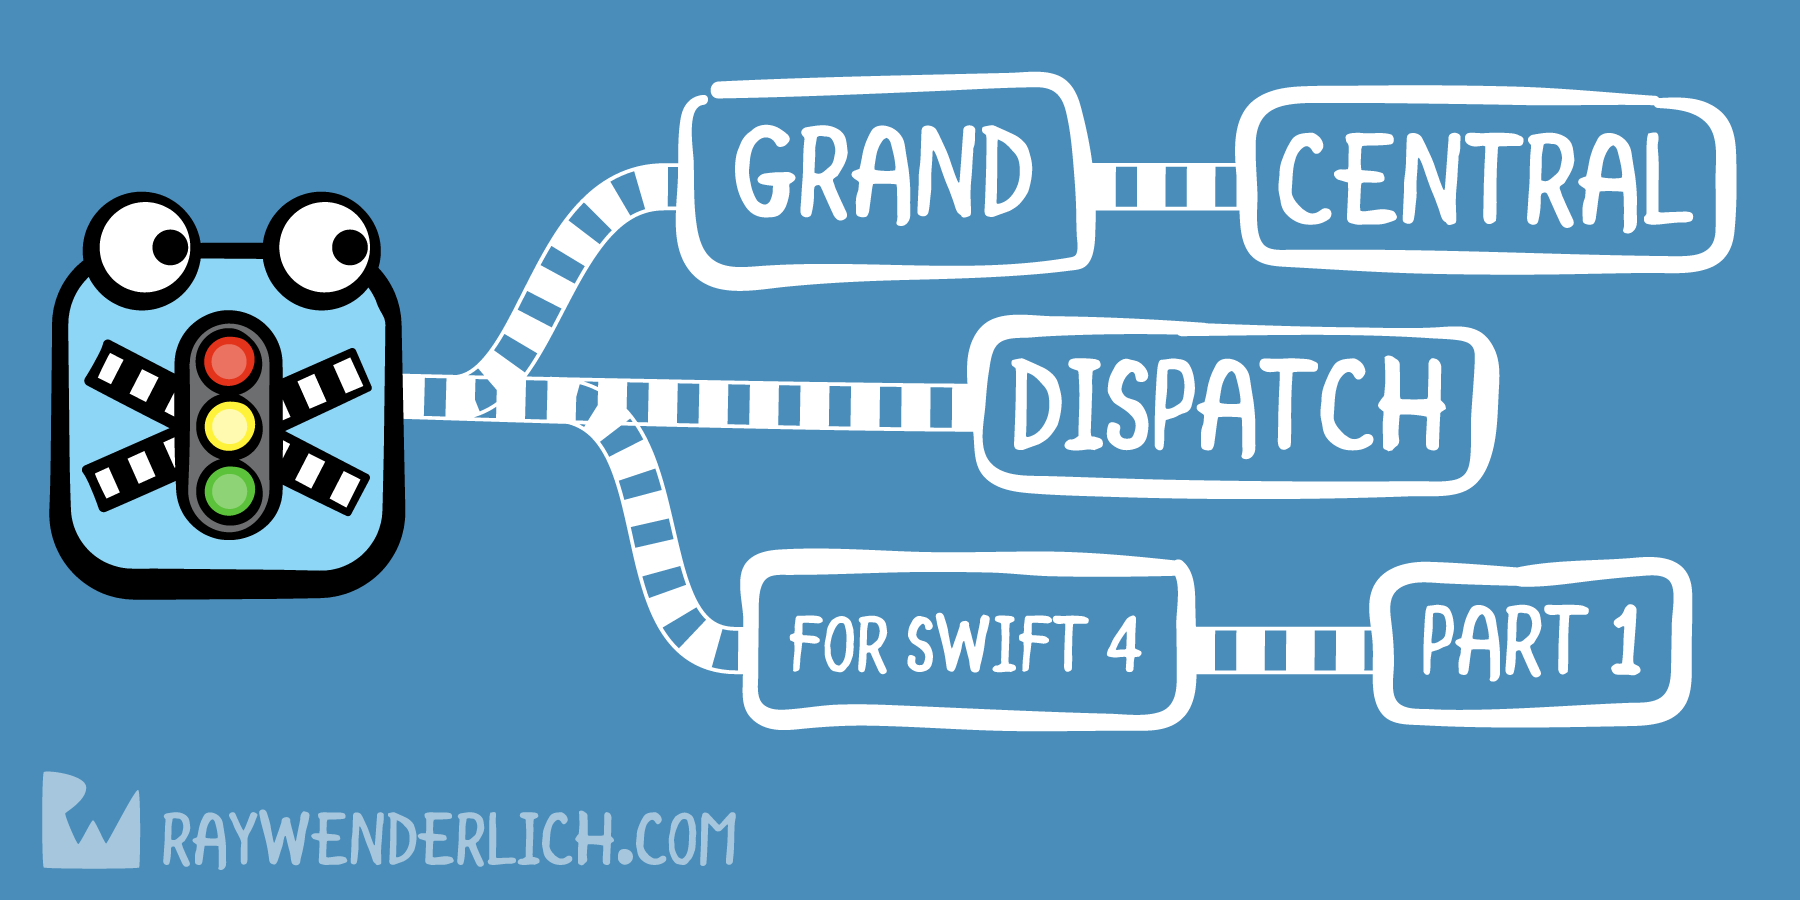 Grand Central Dispatch Tutorial for Swift 4: Part 1/2